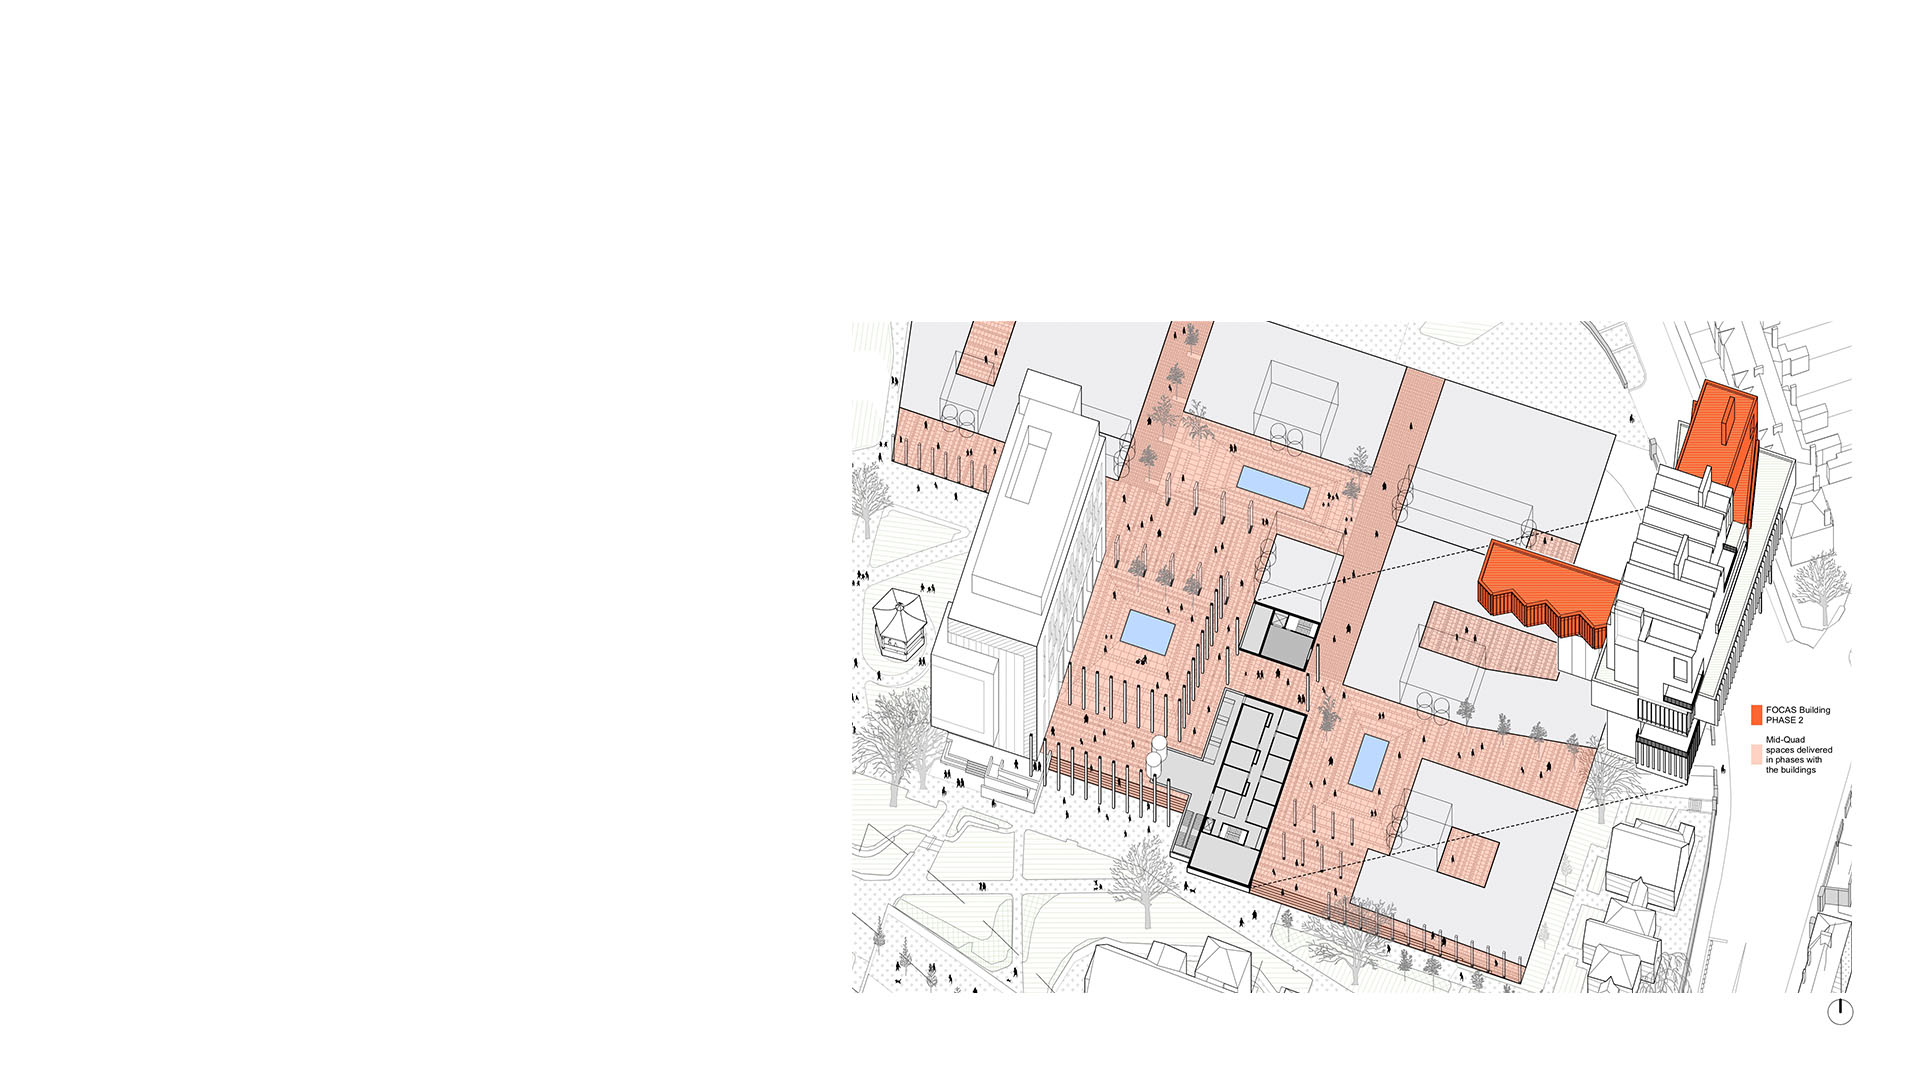 Axonometric cutaway of proposals for new FOCAS building at Technical University Dublin showing public realm at ground level by Keith Williams Architects